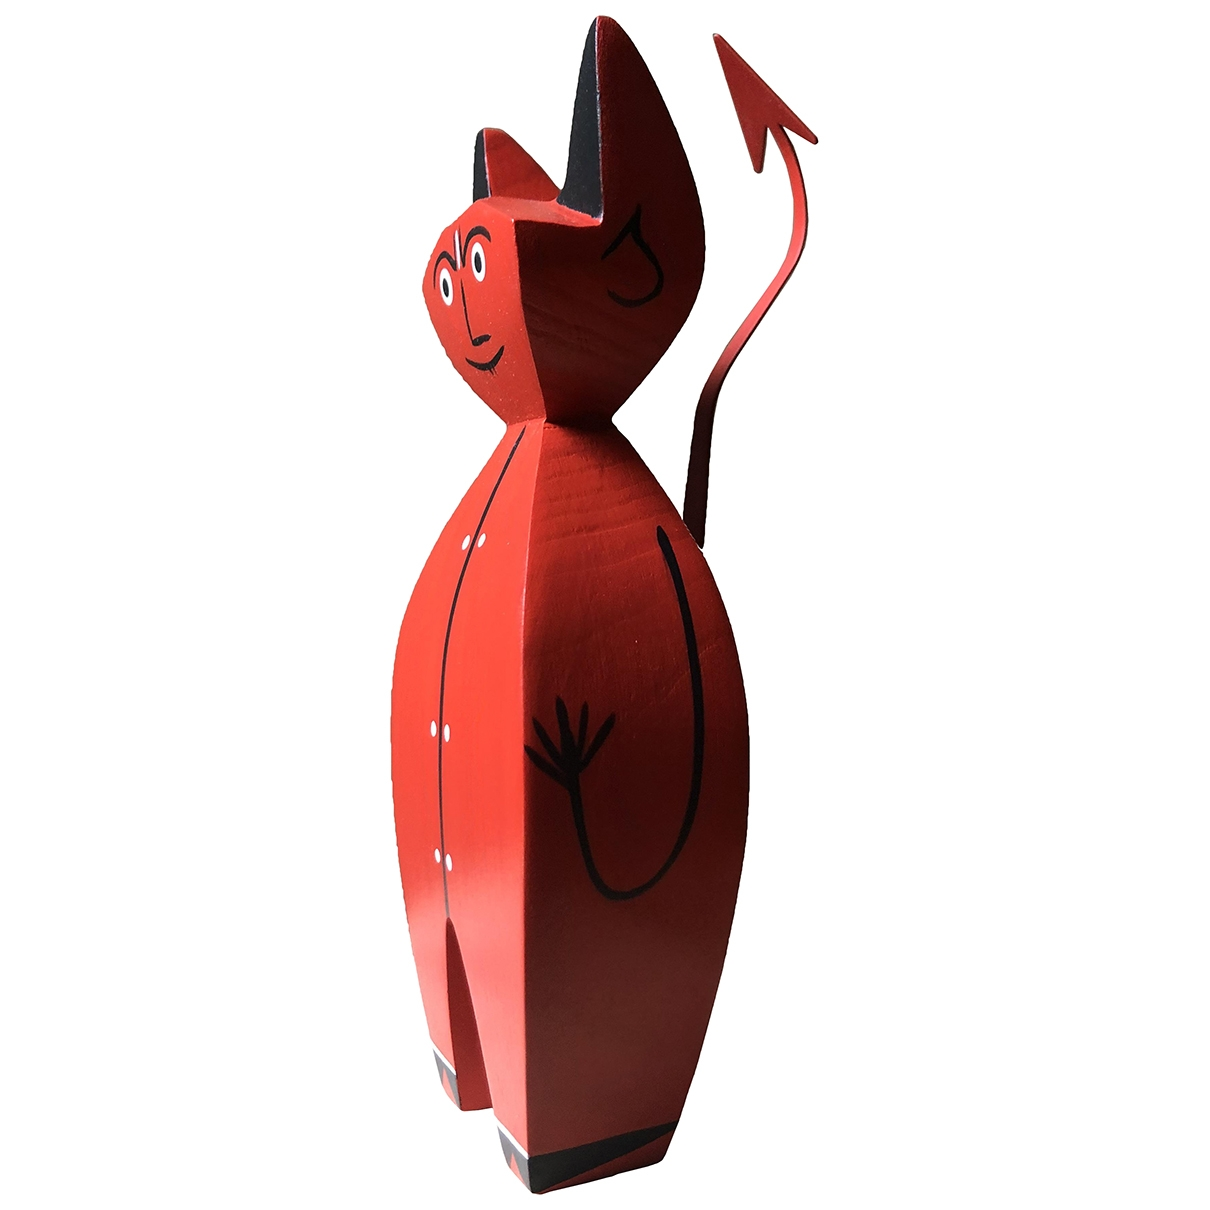 Vitra N Red Wood Home decor for Life & Living N